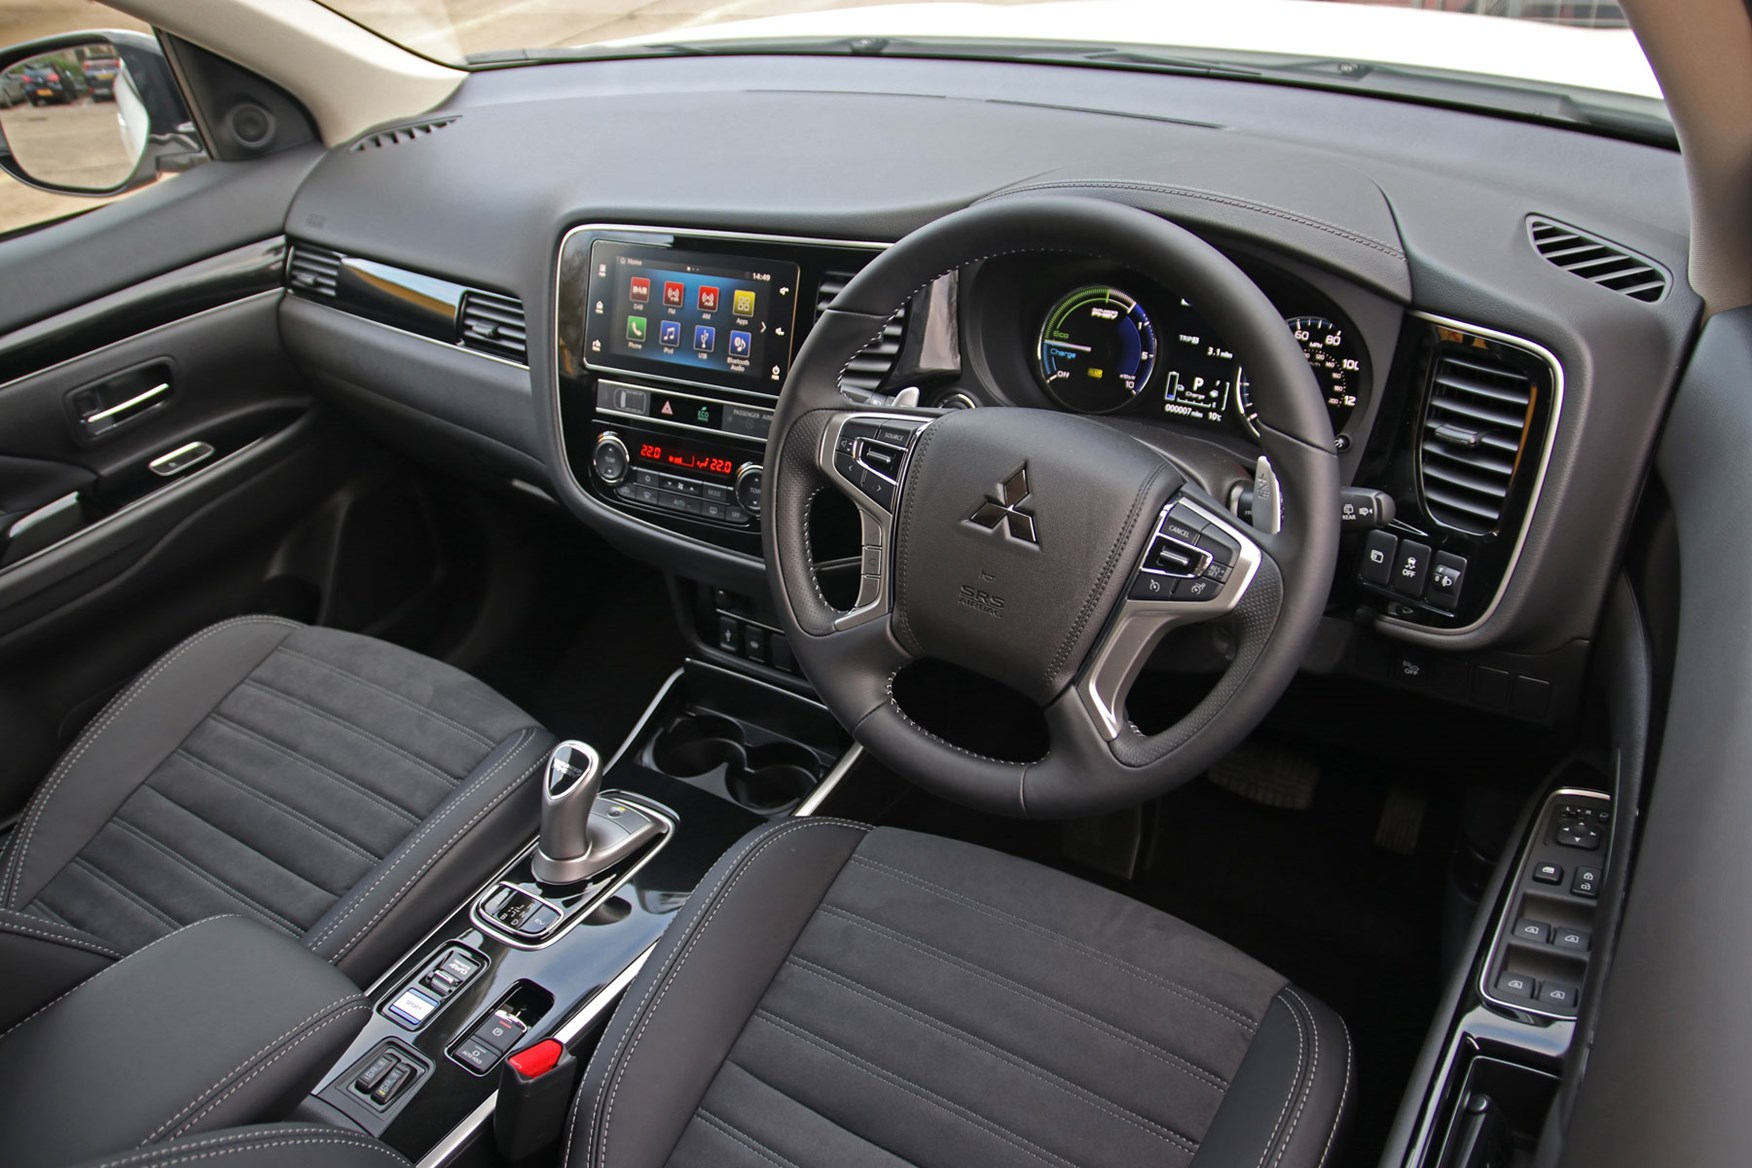 Mitsubishi Outlander Commercial 4x4 van review - cab interior, dashboard, steering, infotainnment system